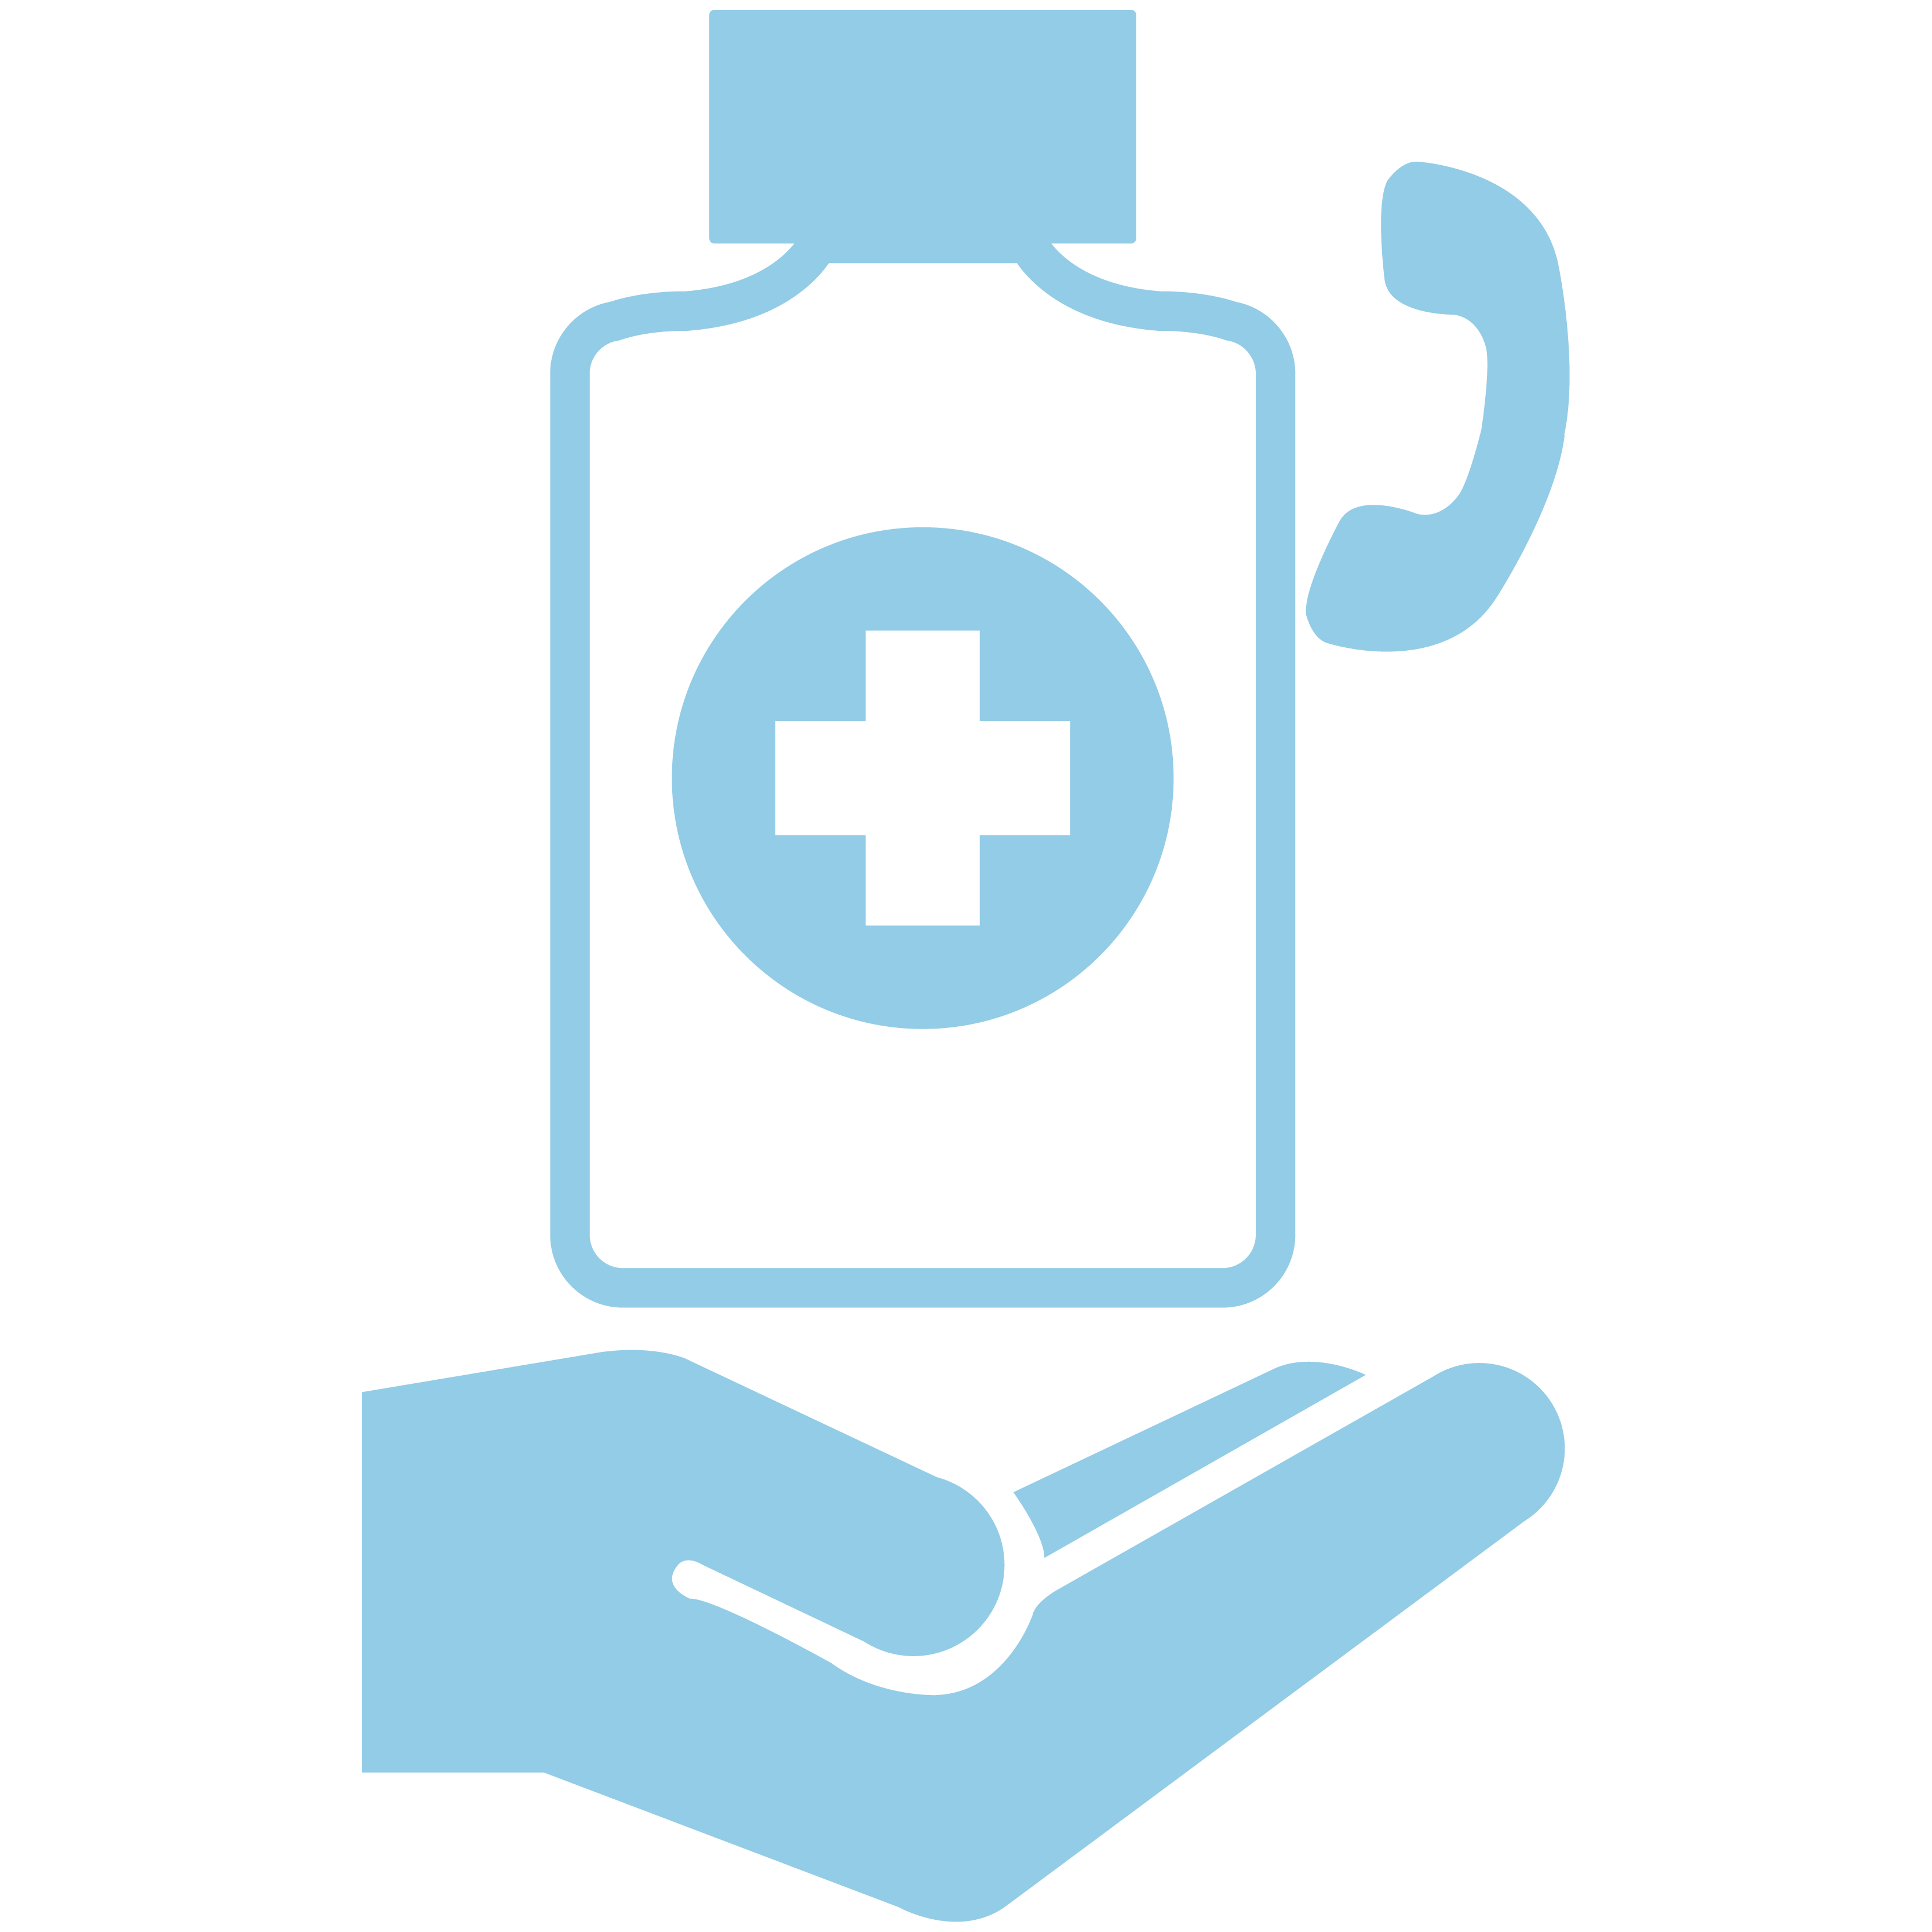 Pharmacy clipart pharmacy service. Managing product availability brand